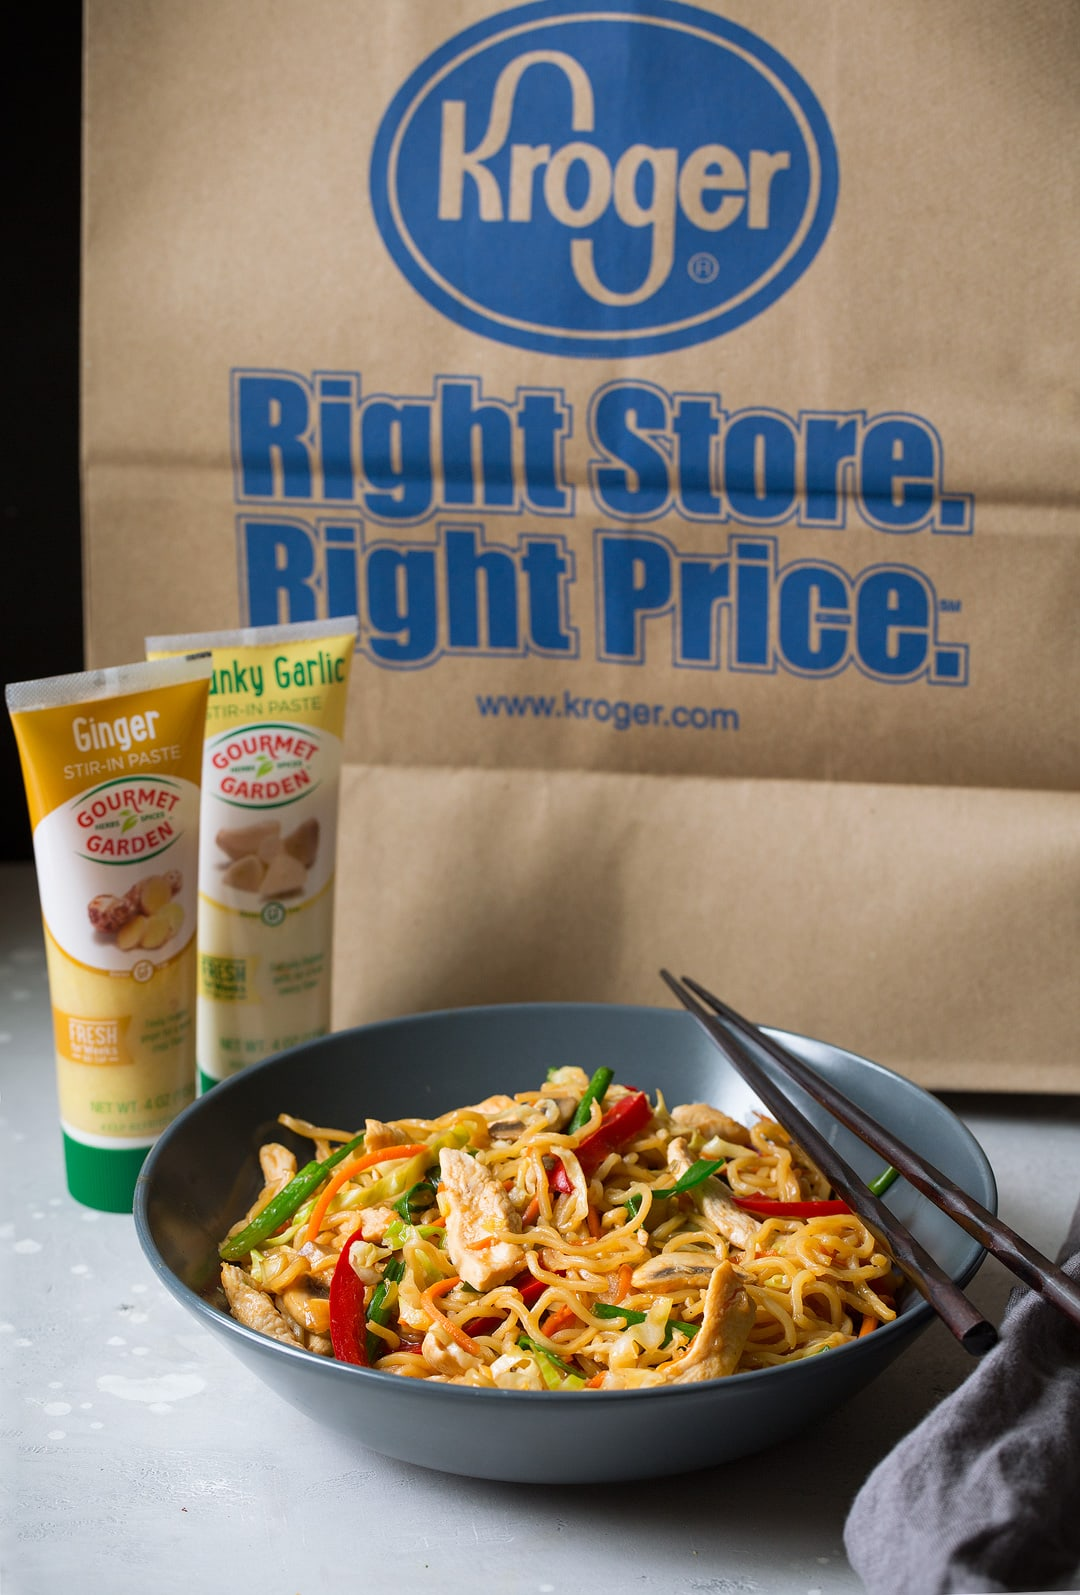 Chicken Yakisoba with Kroger bag